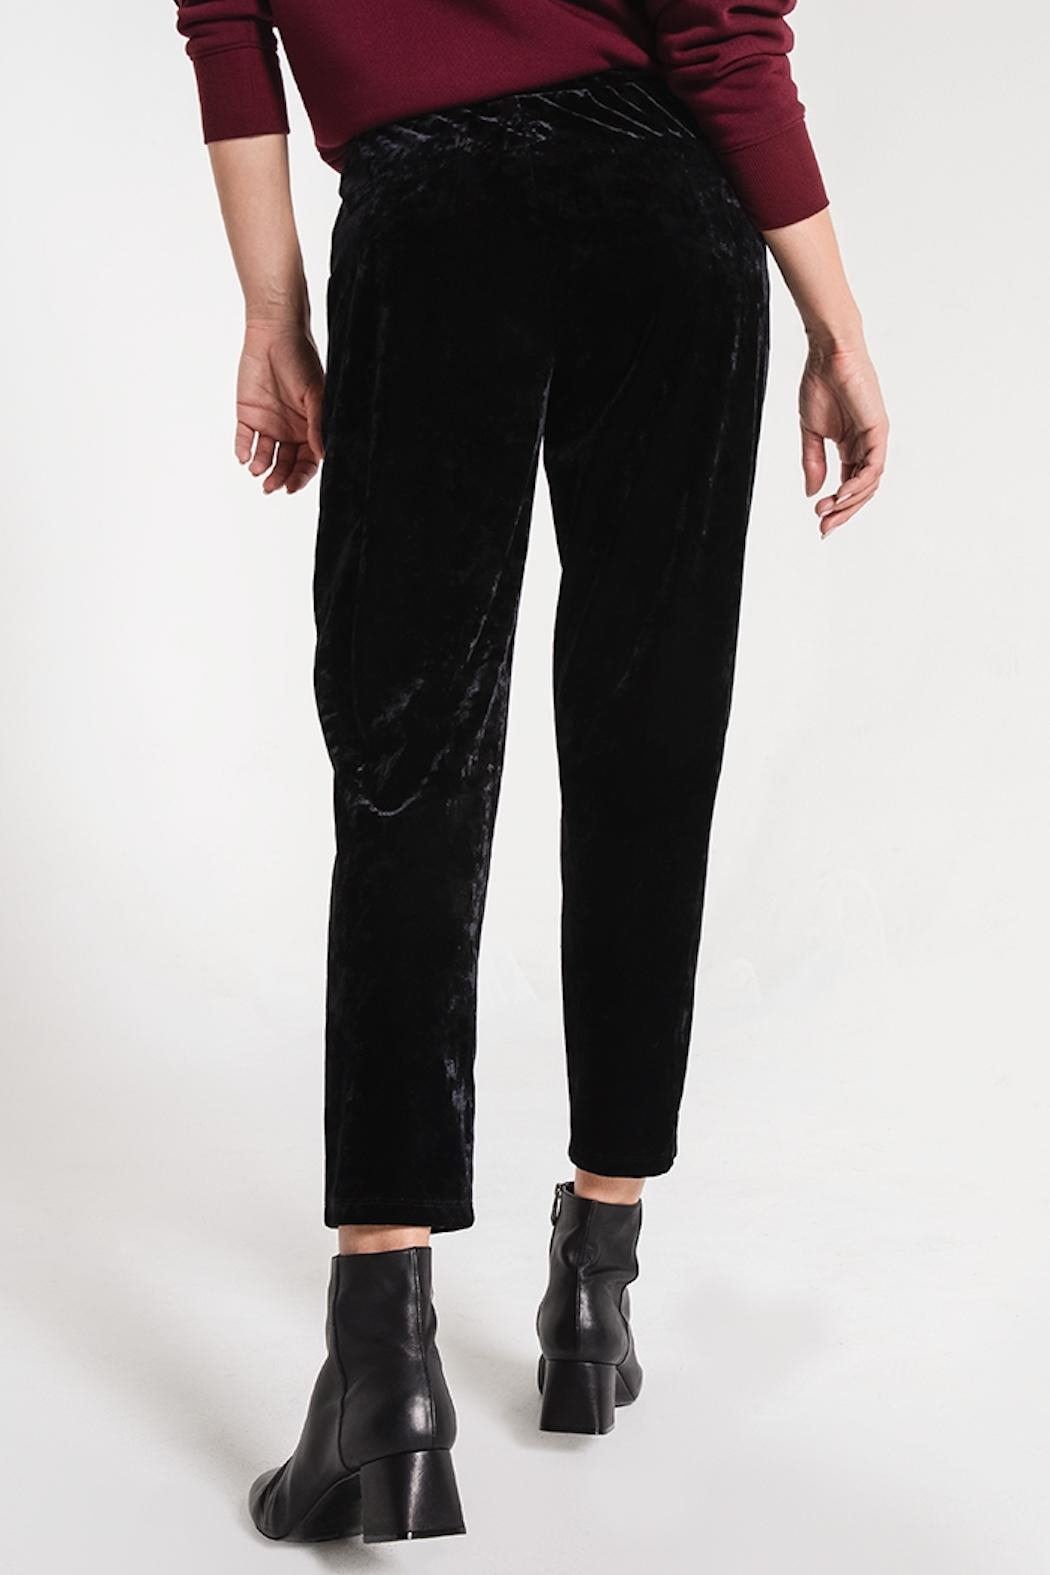 z supply Crushed Velour Trouser - Side Cropped Image